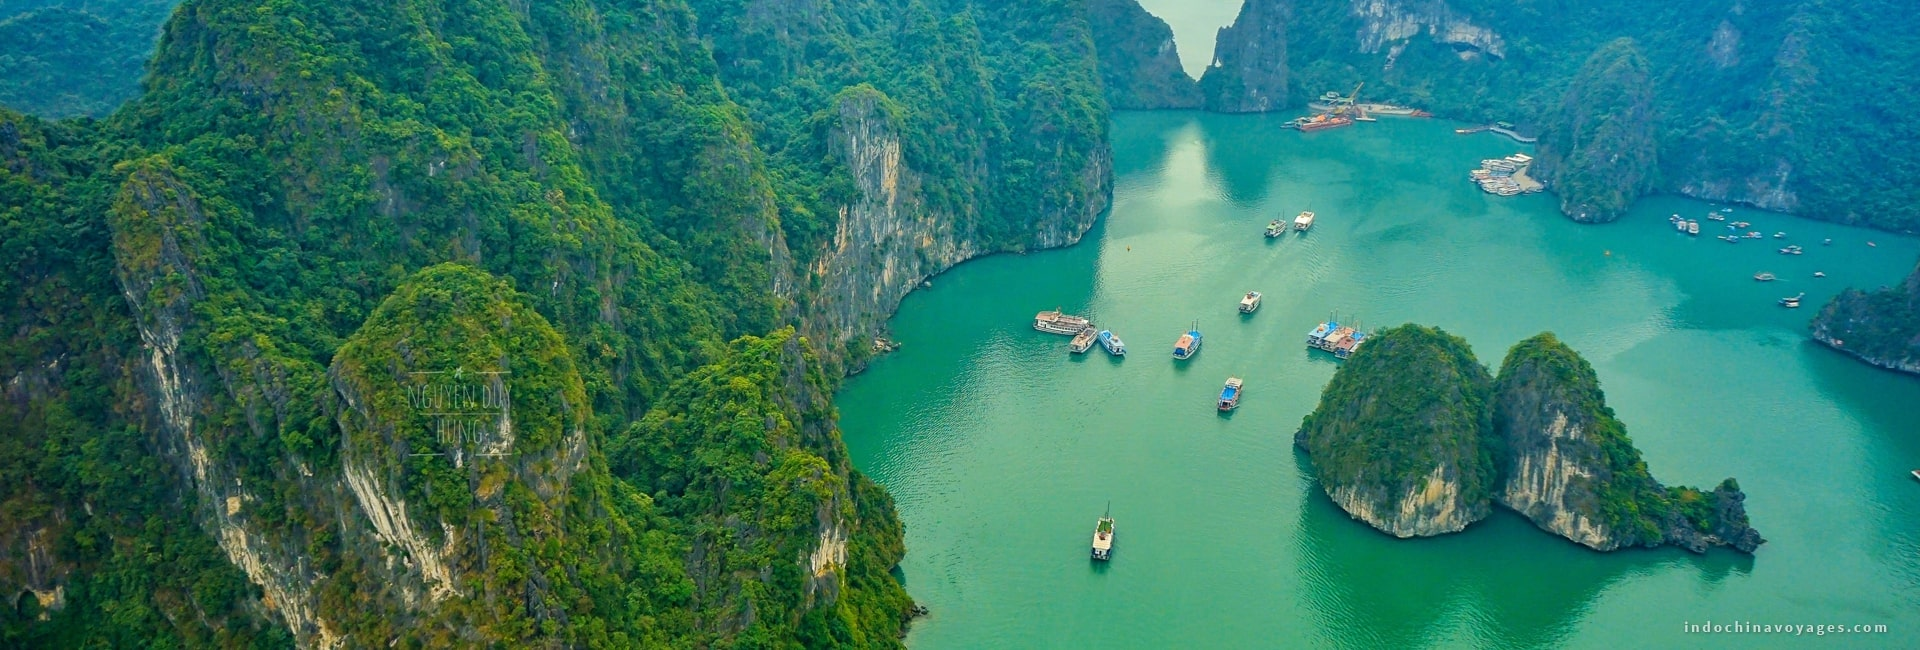 Halong Bay is staggering. And it's not a compliment